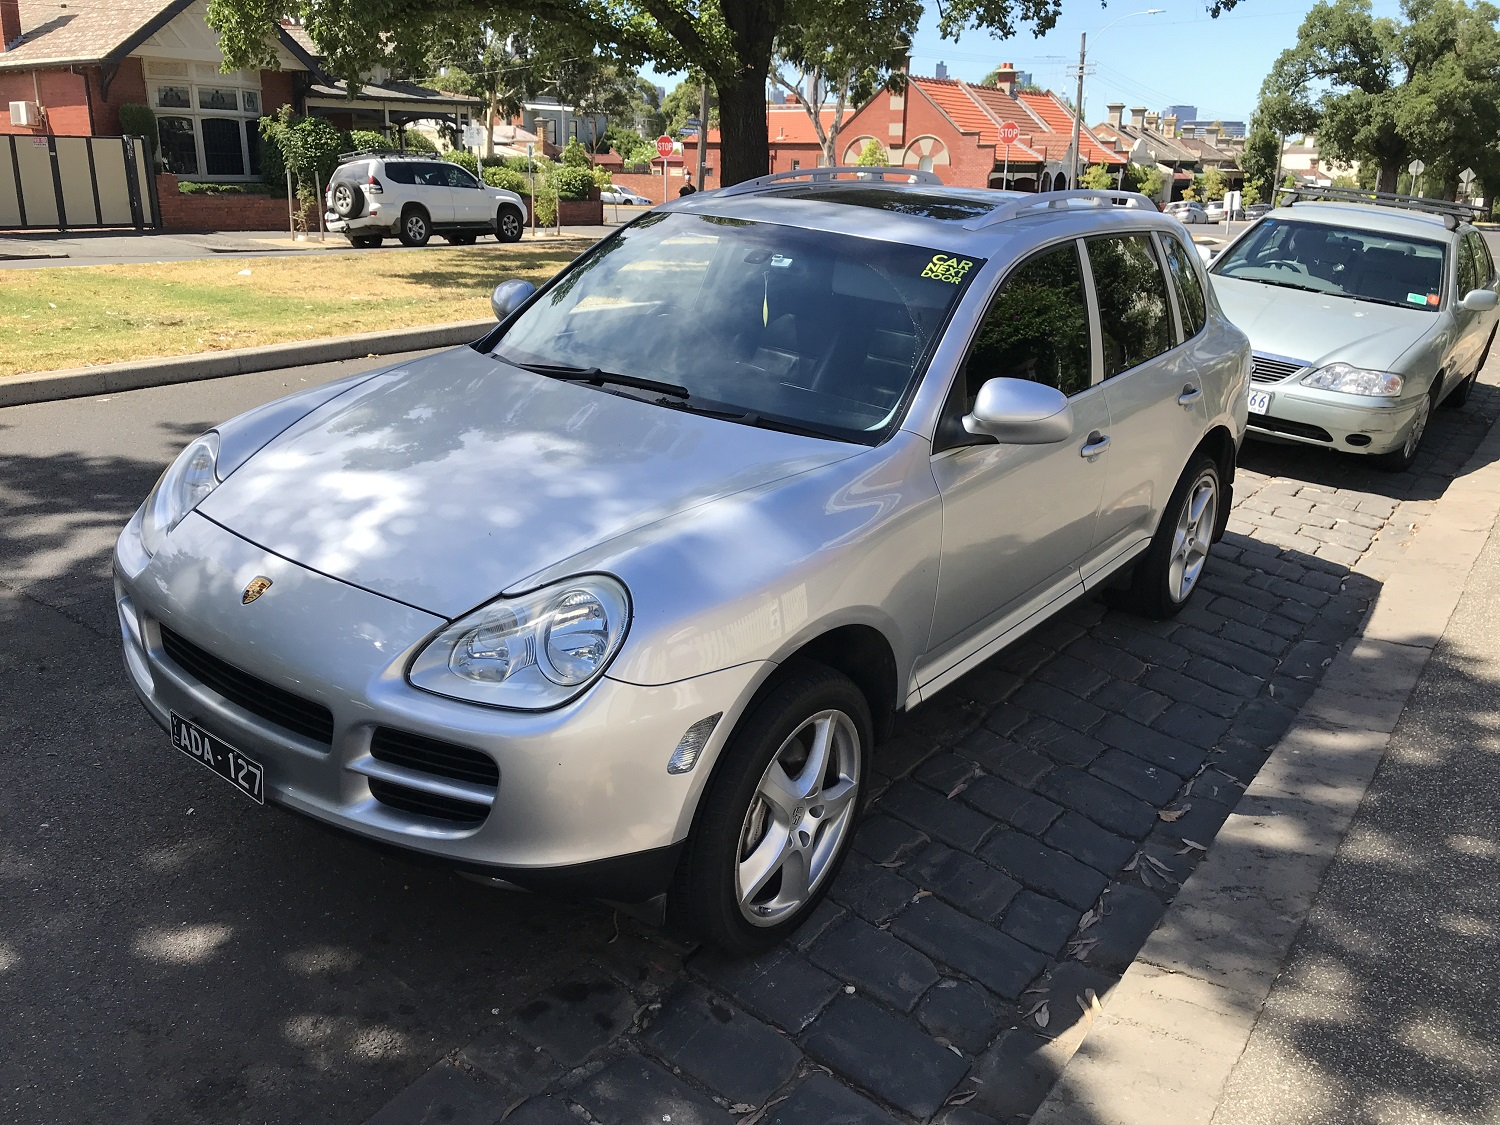 Picture of Shubham's 2004 Porsche Cayenne